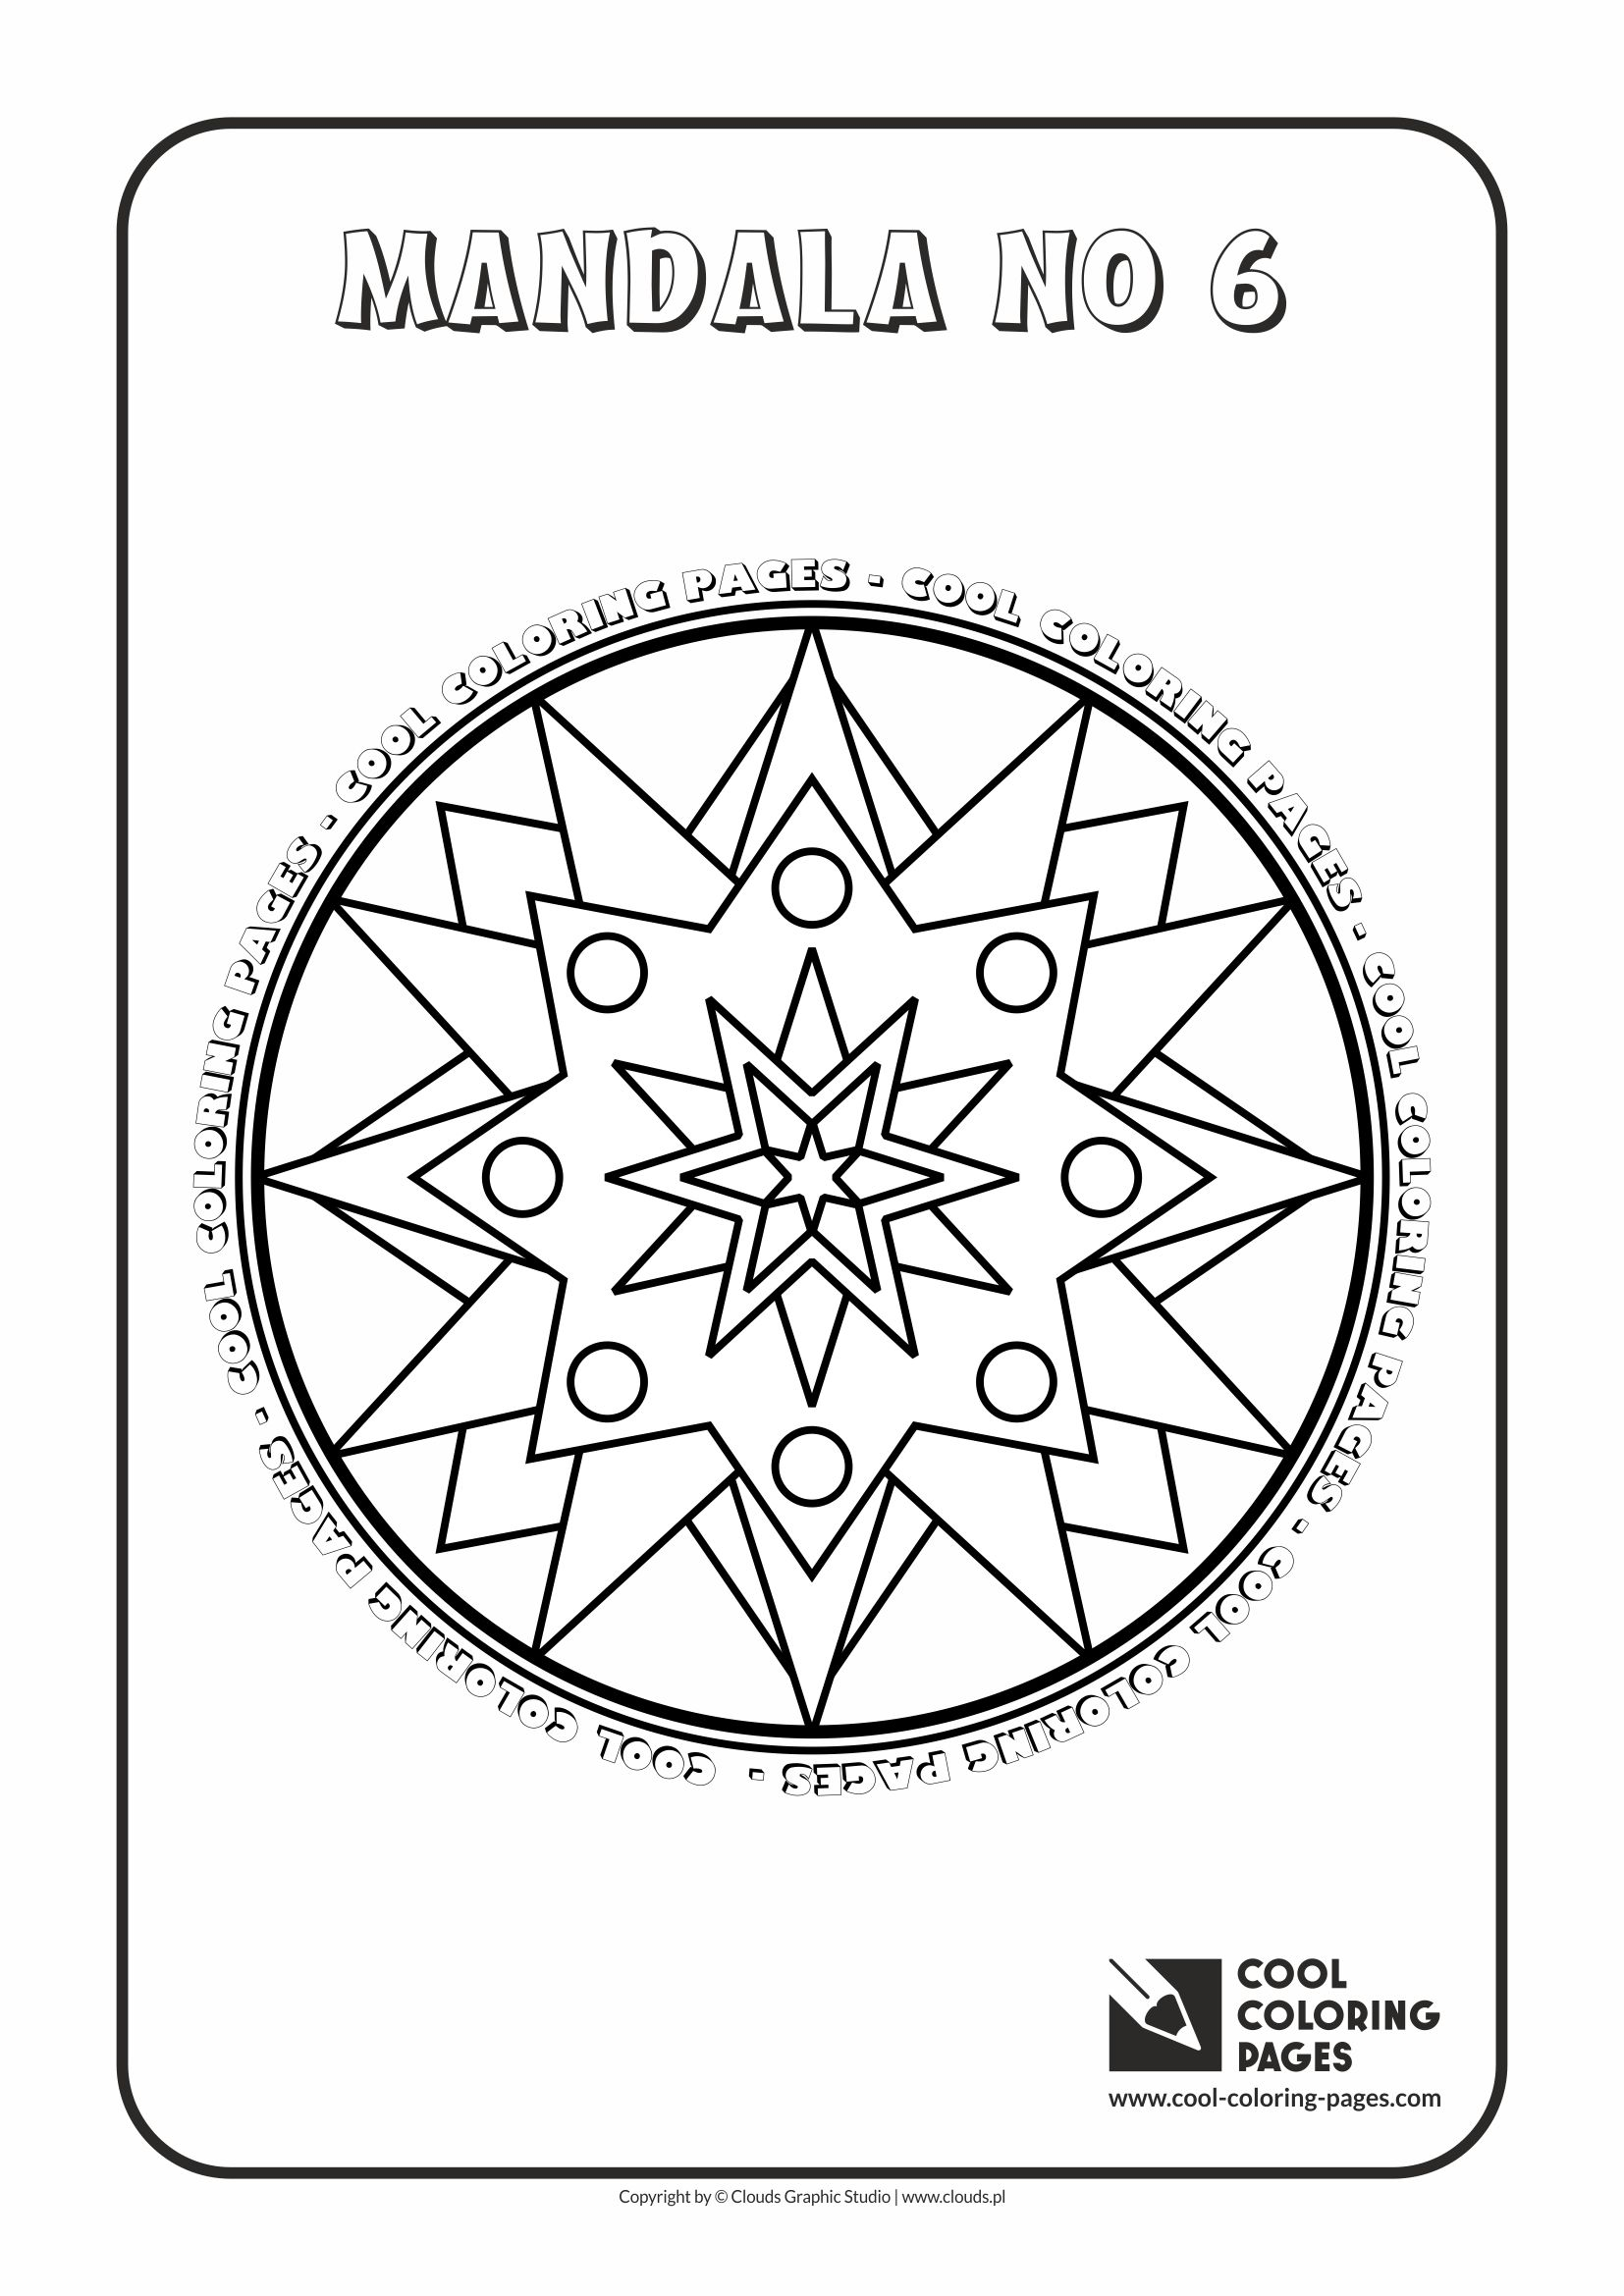 Cool Coloring Pages Mandalas - Cool Coloring Pages | Free ...